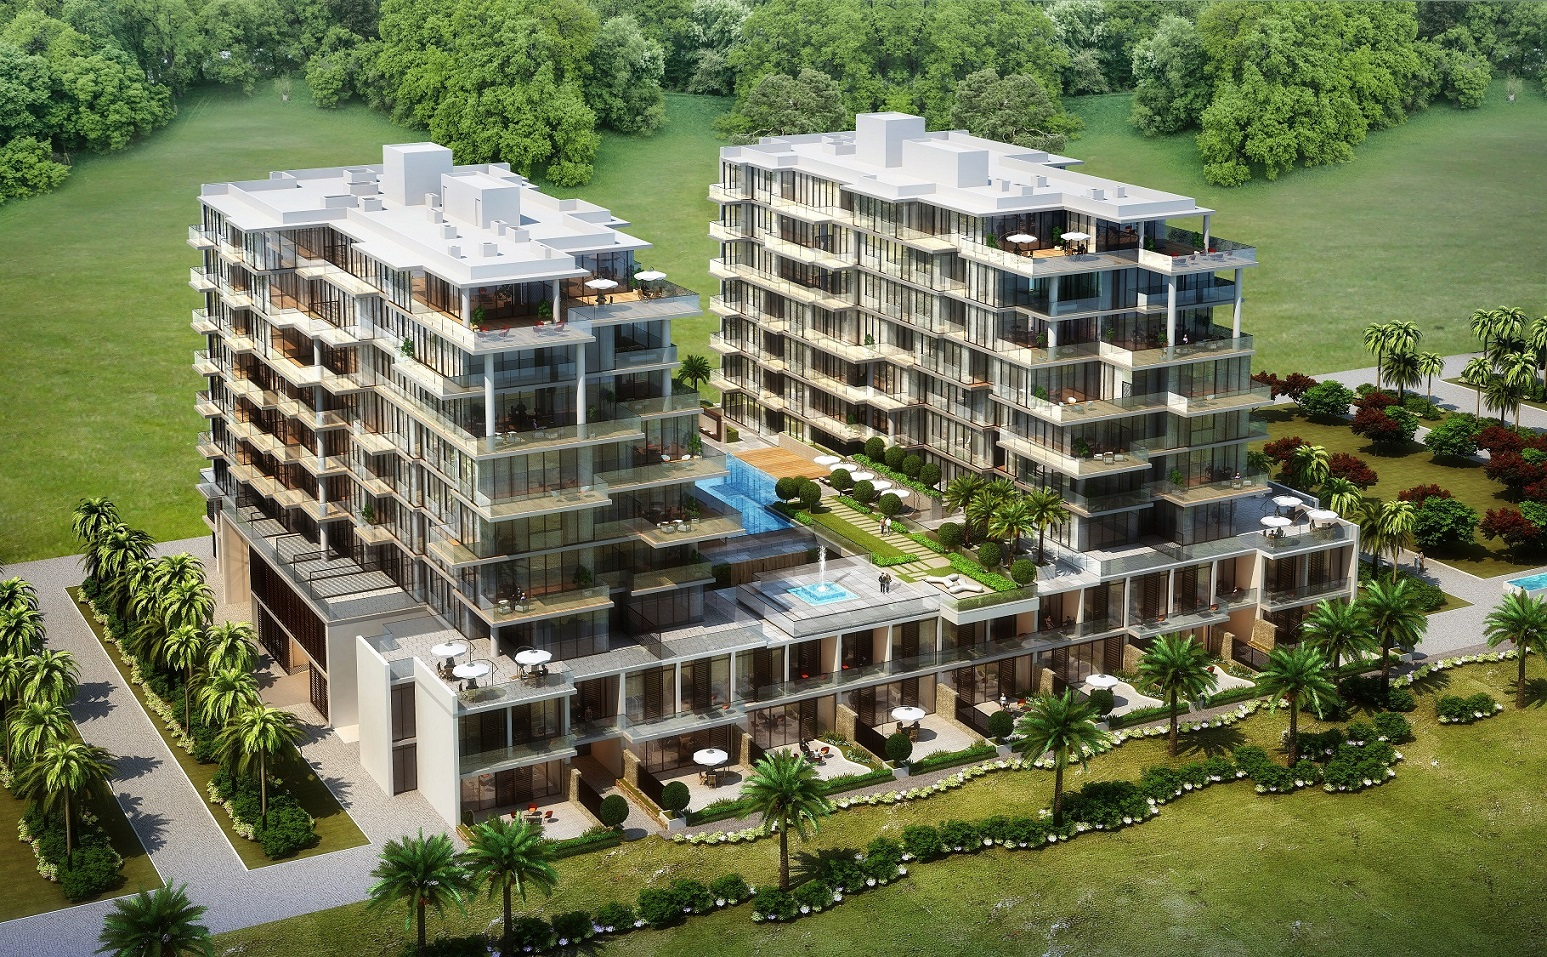 Dubai's Damac Says New Loretto Project Sells Out In One Night